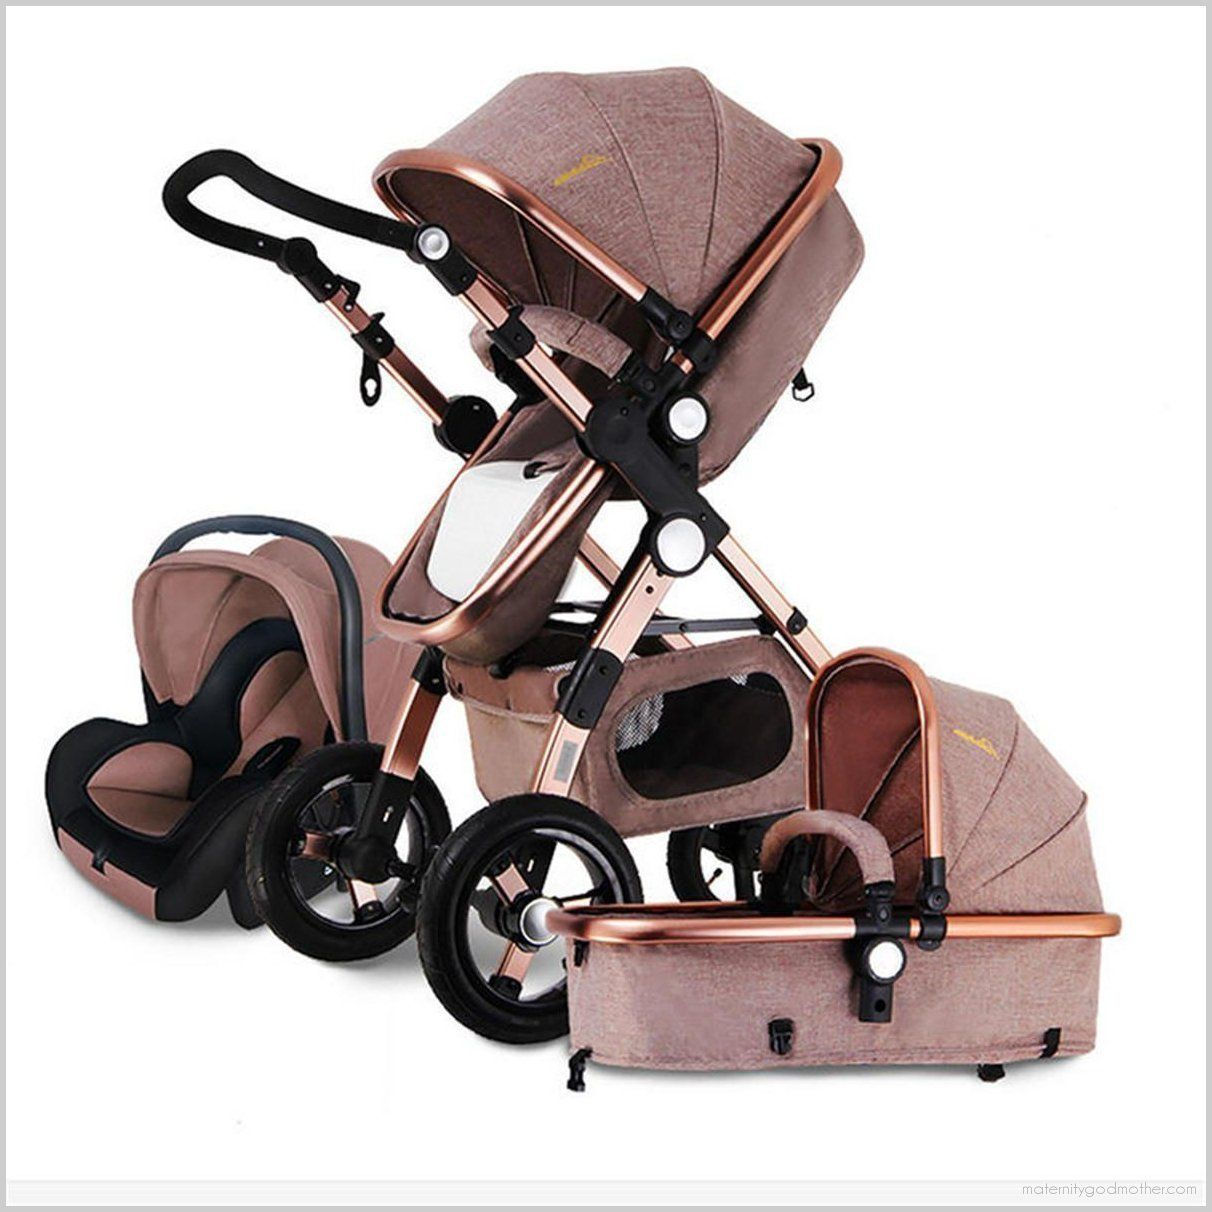 Carriage Type Strollers 3in1 Multi Function Baby Stroller Pram Foldable Pushchair